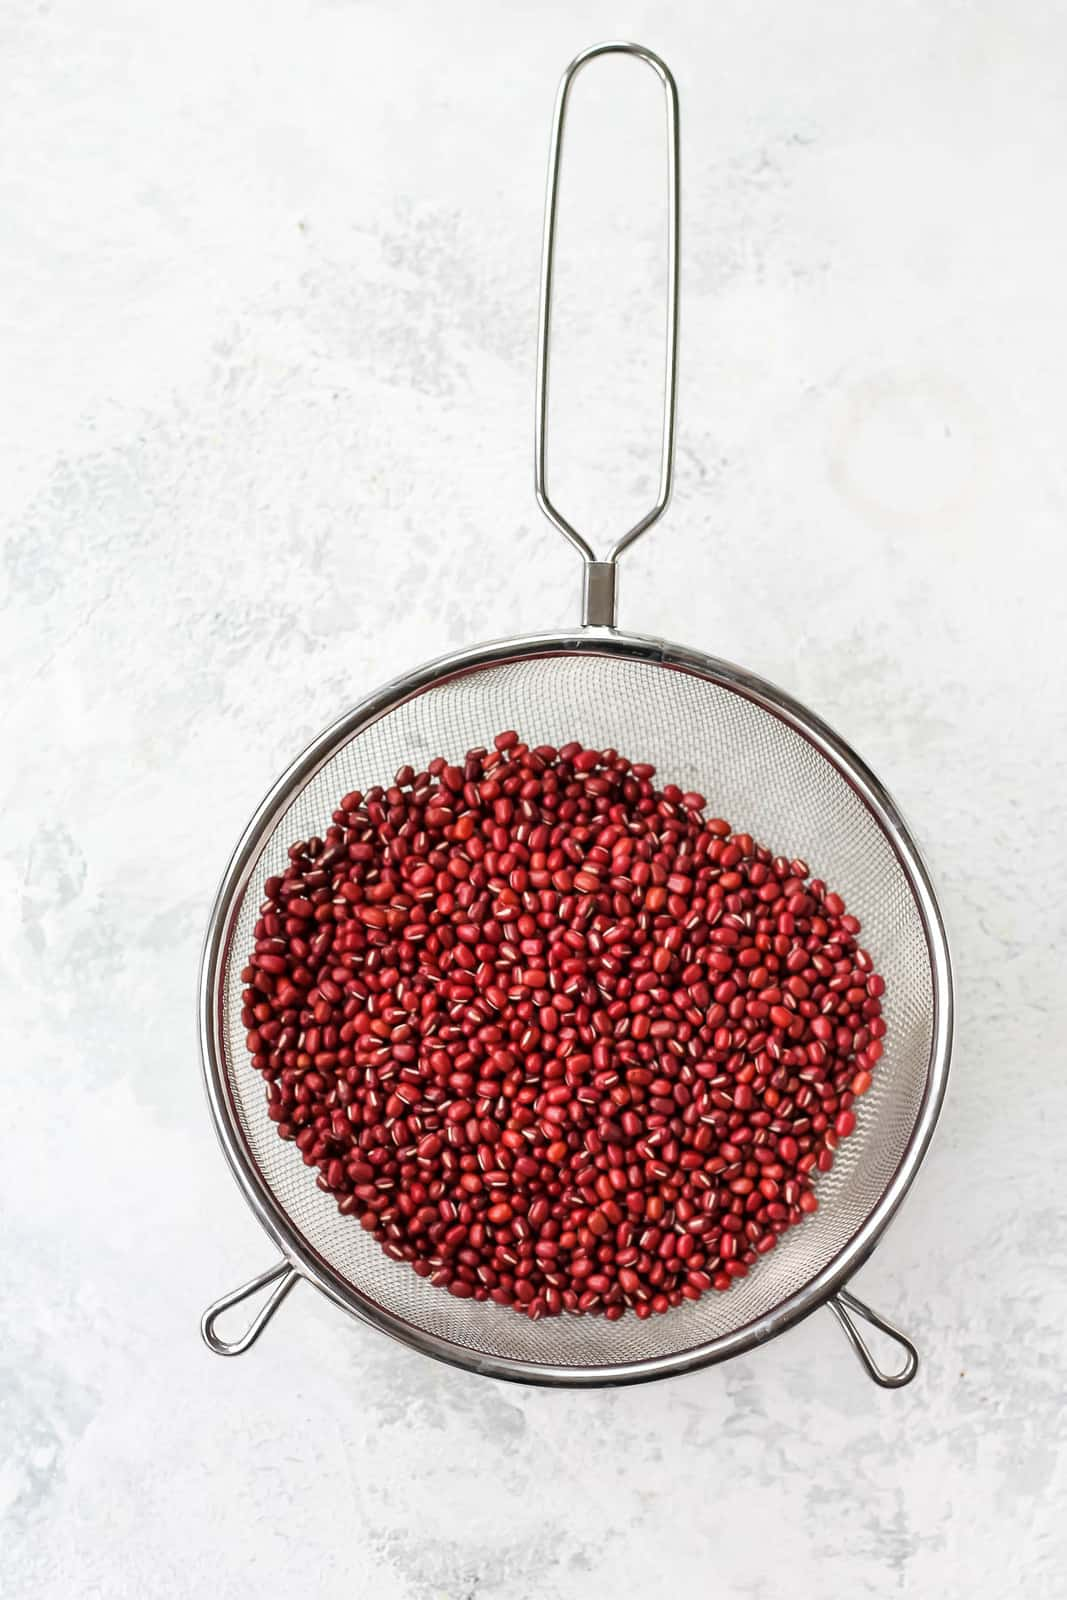 overhead photo of adzuki beans in a mesh strainer on a grey background